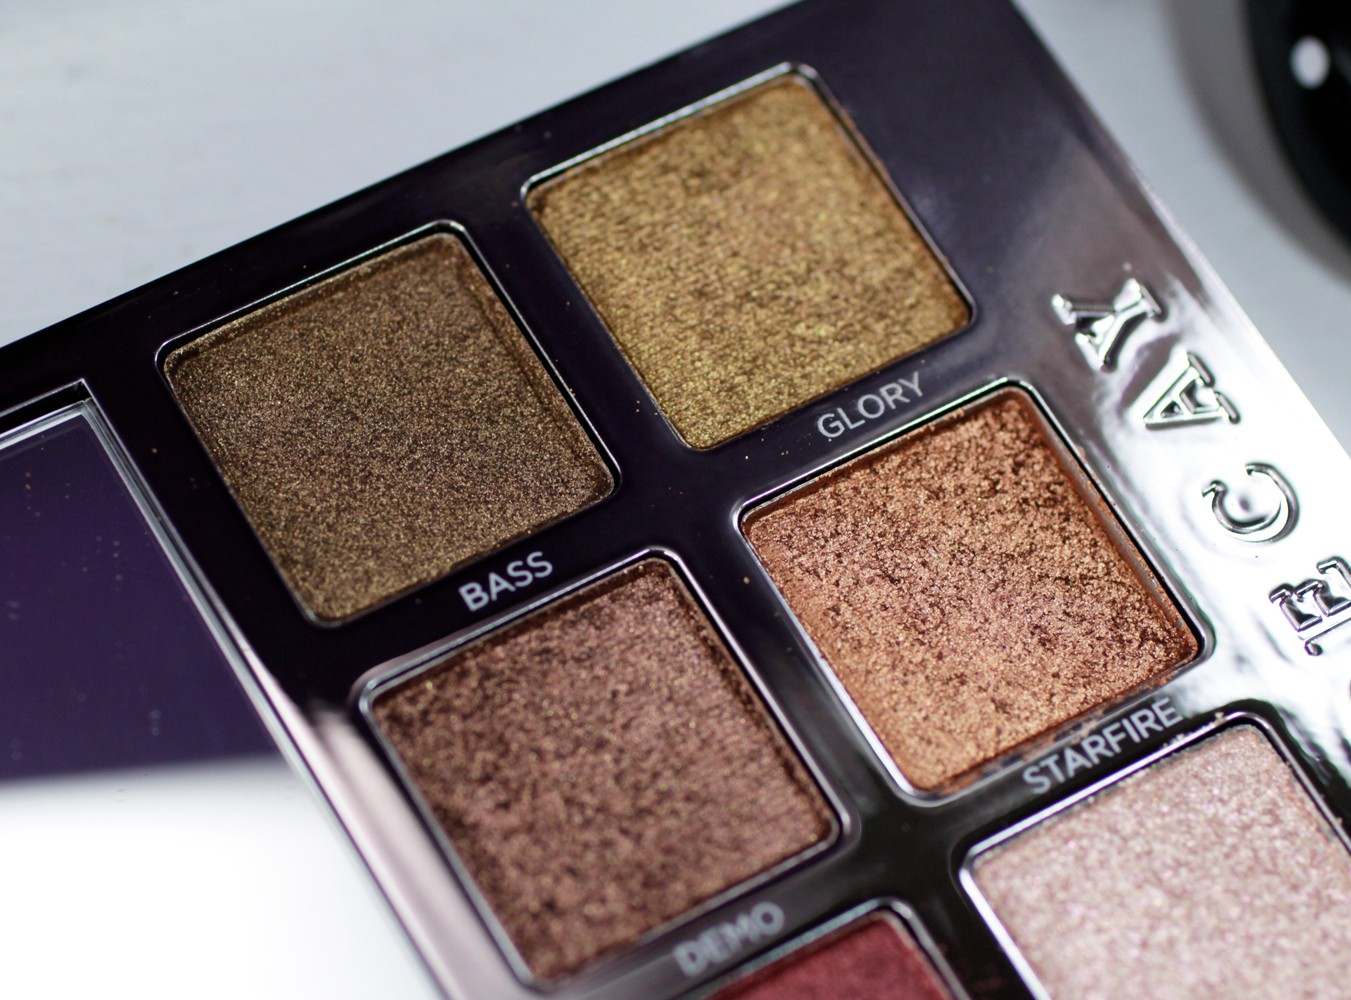 Urban Decay Heavy Metals Eyeshadow Palette - Bass and Glory - Urban Decay Heavy Metals Eyeshadow Palette review by popular Los Angeles cruelty free beauty blogger My Beauty Bunny